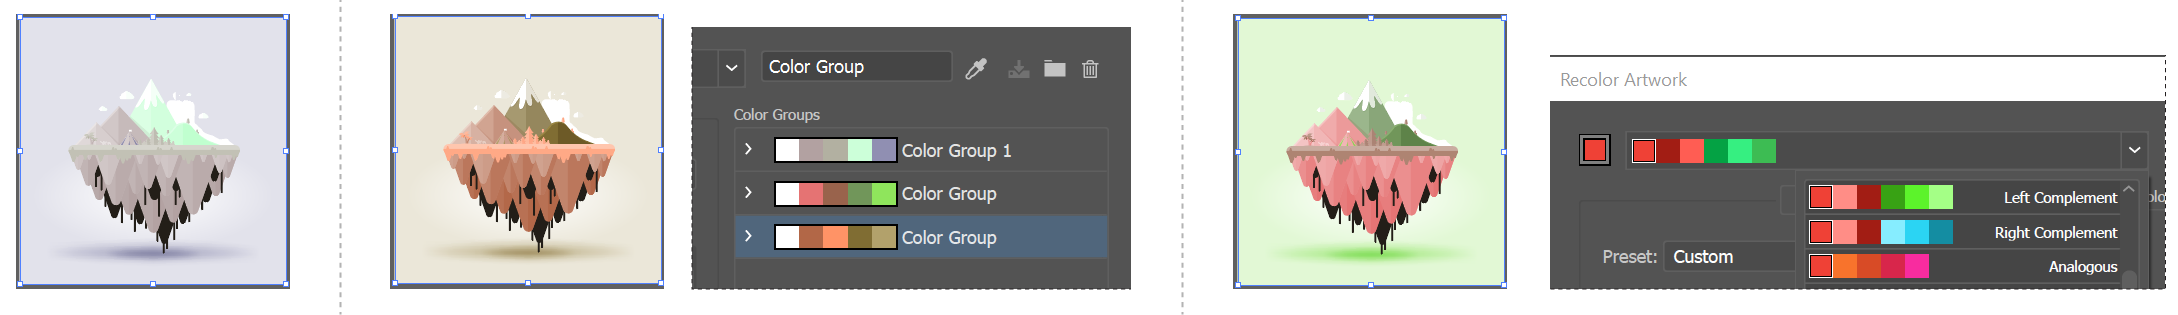 Original artwork colors (top), assigning new colors by selecting a color group in the Color Groups list (center), and assigning new colors by creating a new color group using the Harmony Rules menu (bottom)